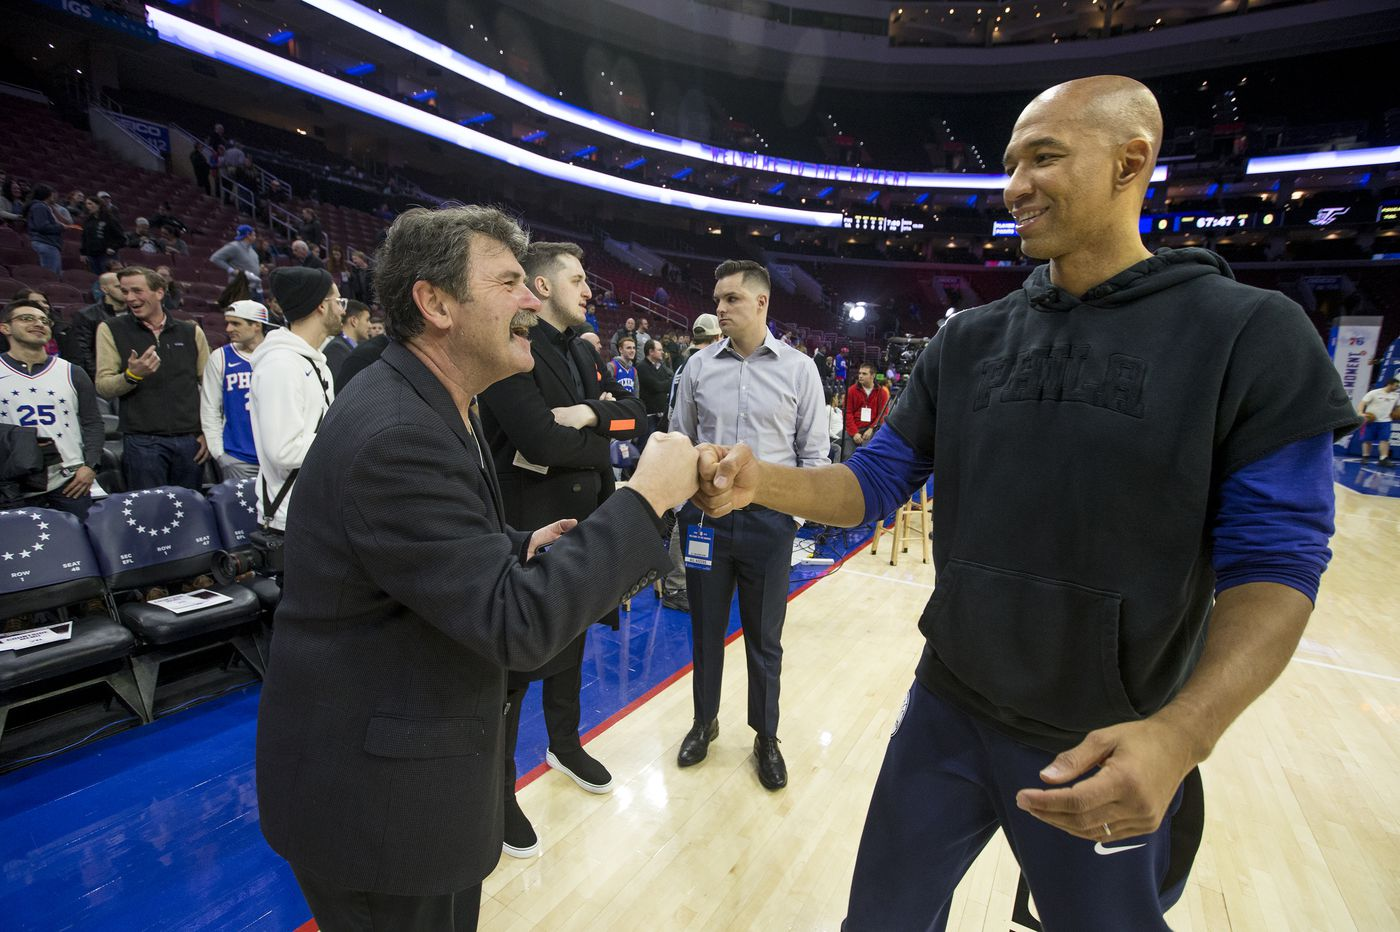 Report: Sixers assistant coach Monty Williams a top candidate for Kings' coaching job